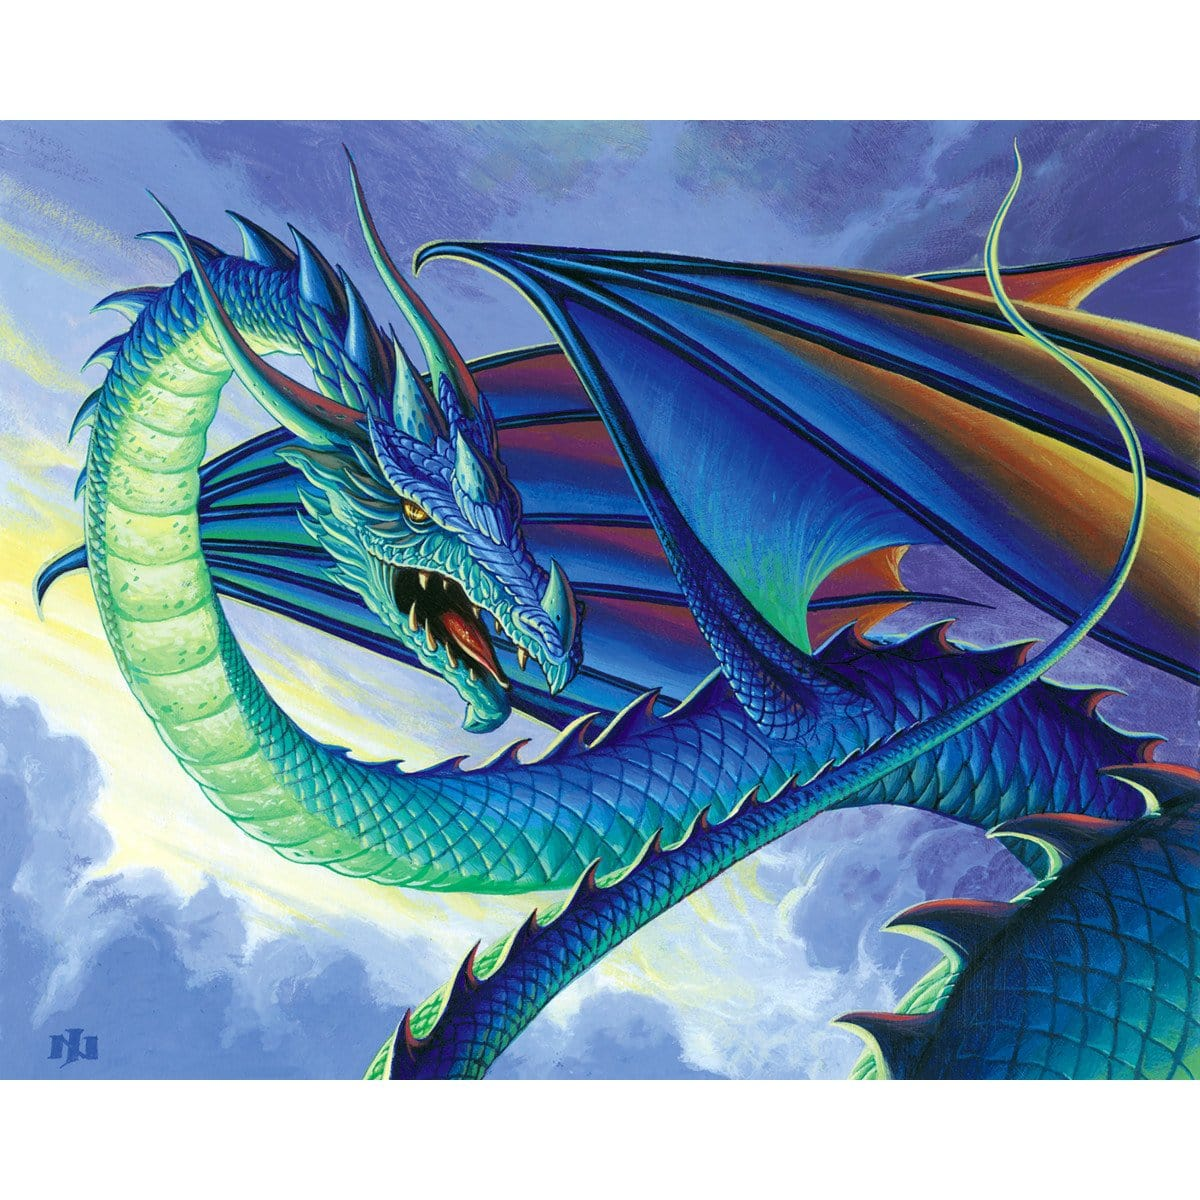 Iridescent Drake Print - Print - Original Magic Art - Accessories for Magic the Gathering and other card games